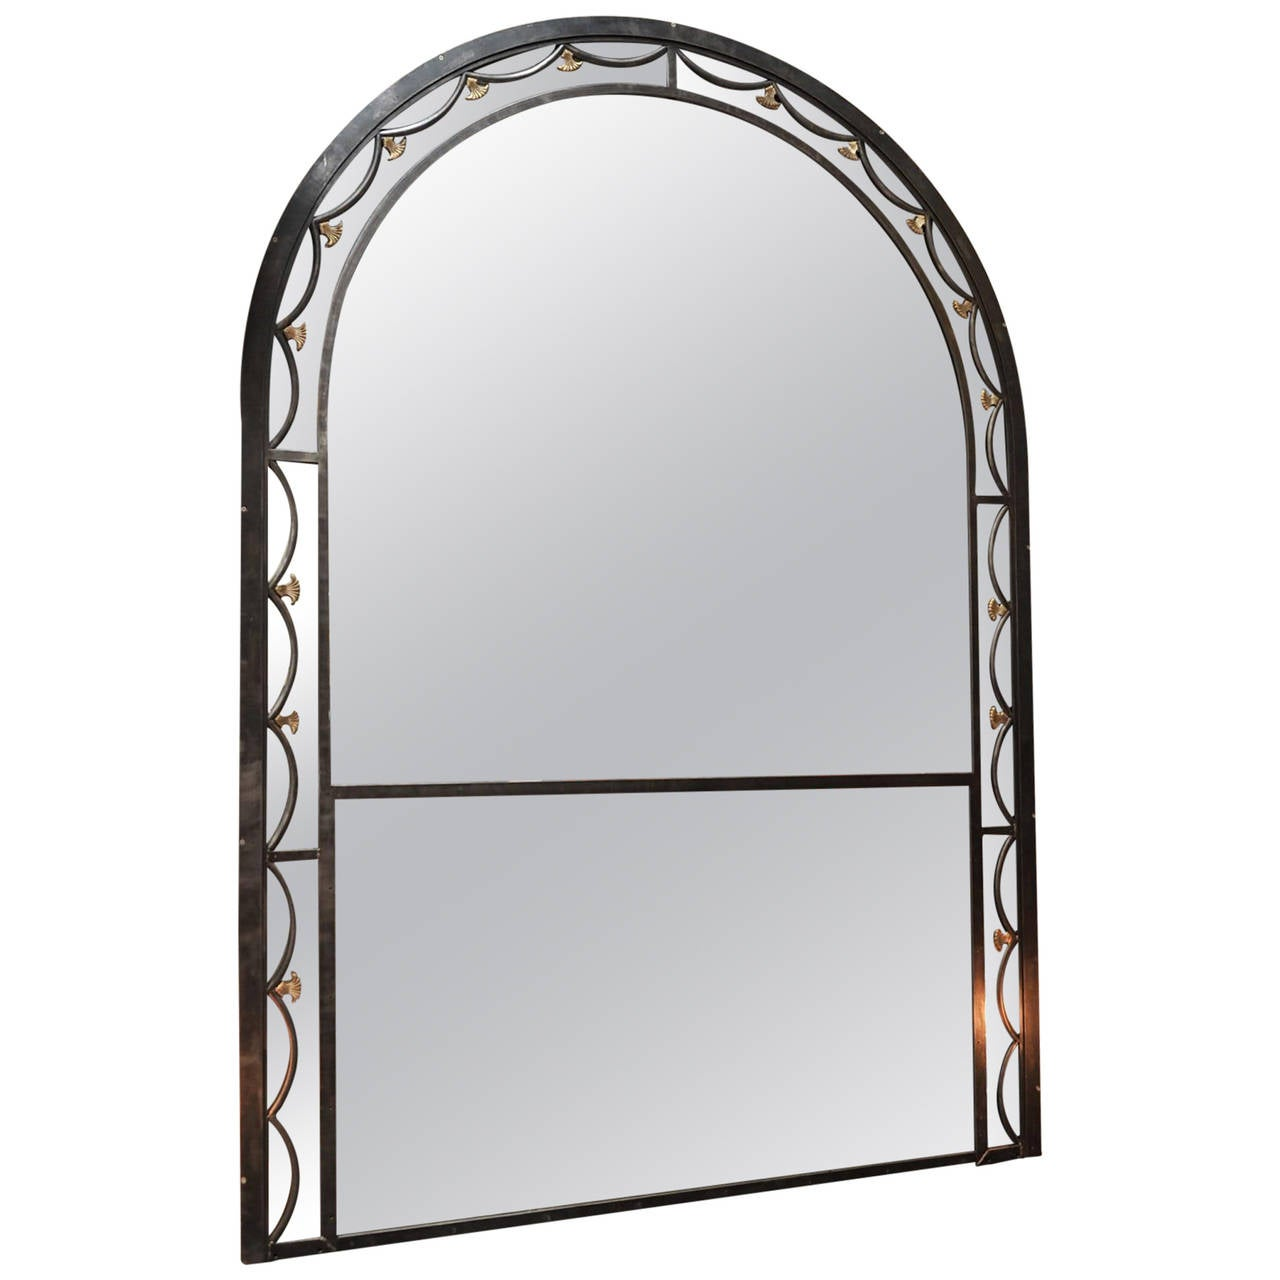 Huge iron and bronze mirror 1940s at 1stdibs for Bronze mirror